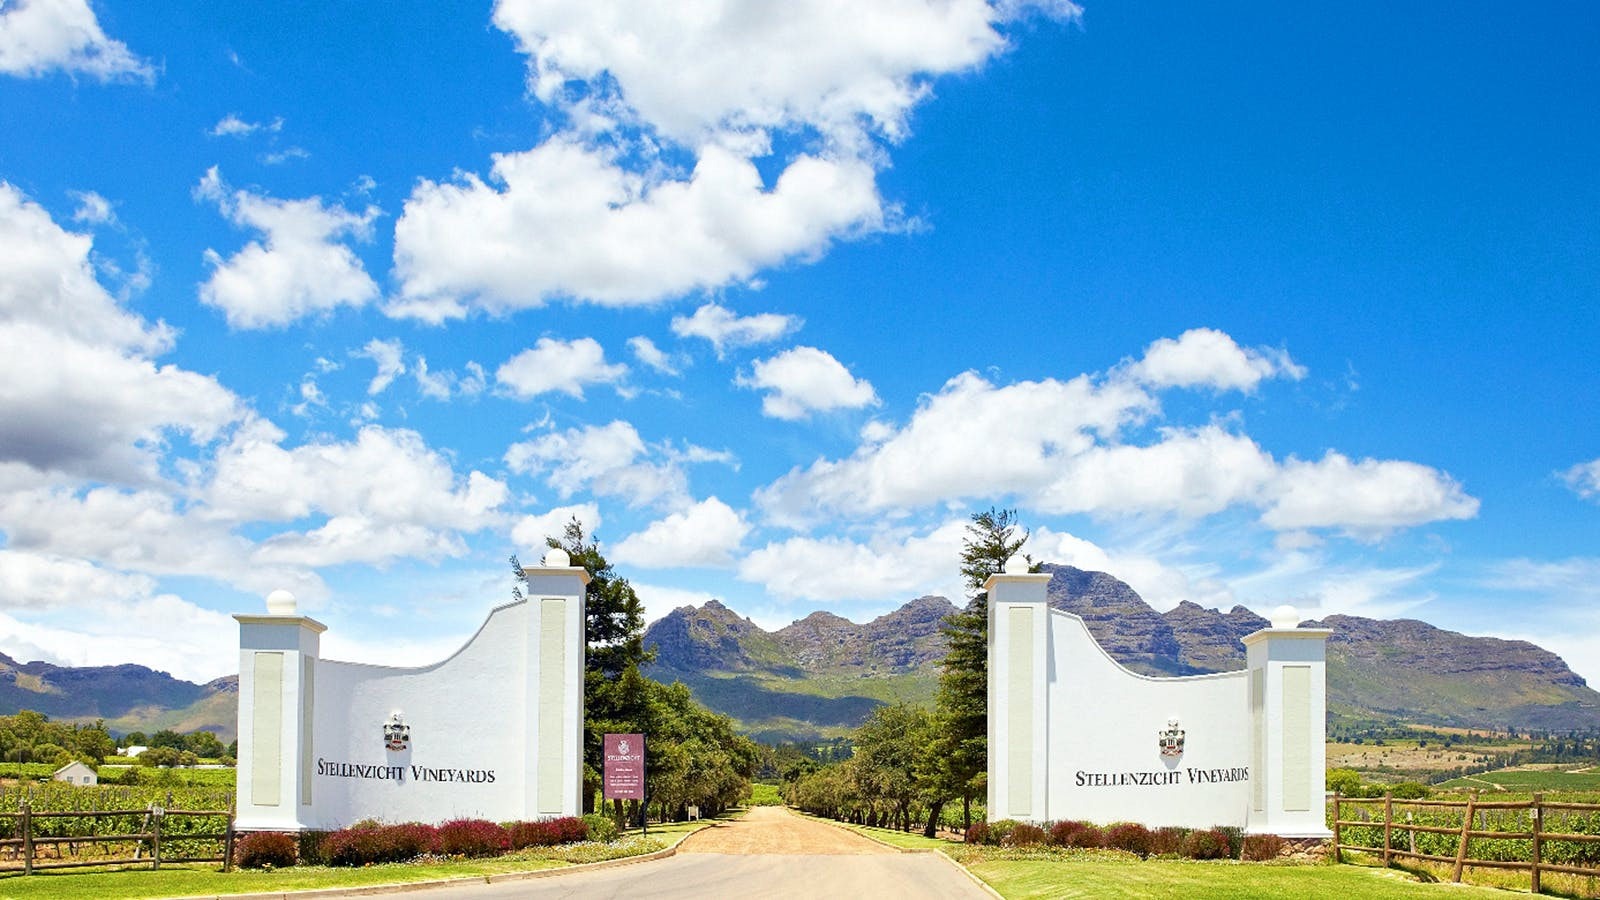 Exclusive: Ernie Els Wines Co-Owner Buys Historic South African Winery Stellenzicht